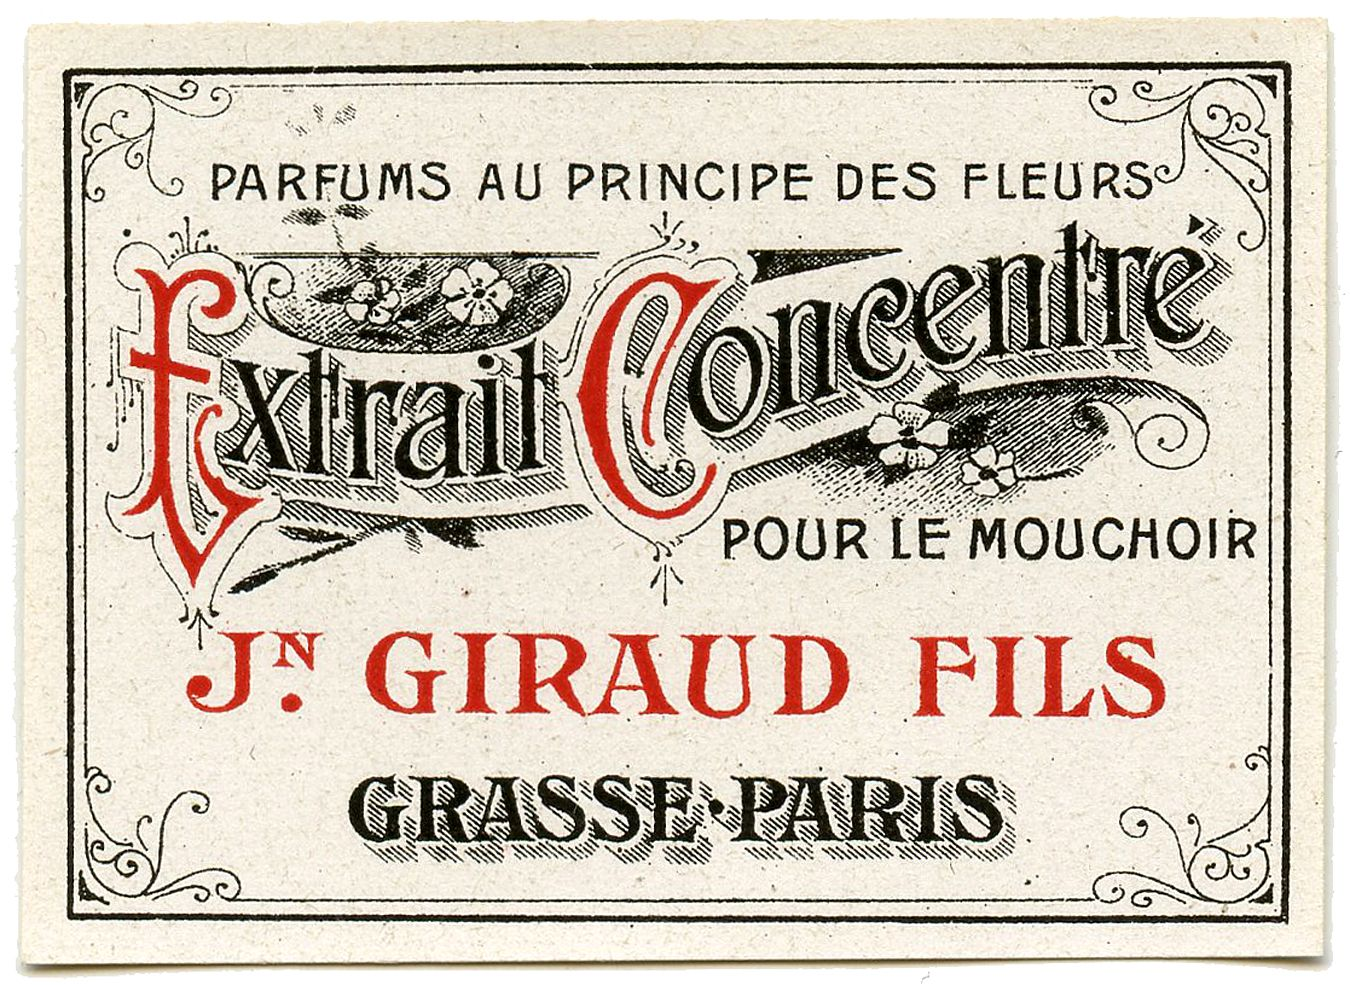 453 best vintage images on pinterest vintage images image 19th century french soap advertisement fandeluxe Choice Image